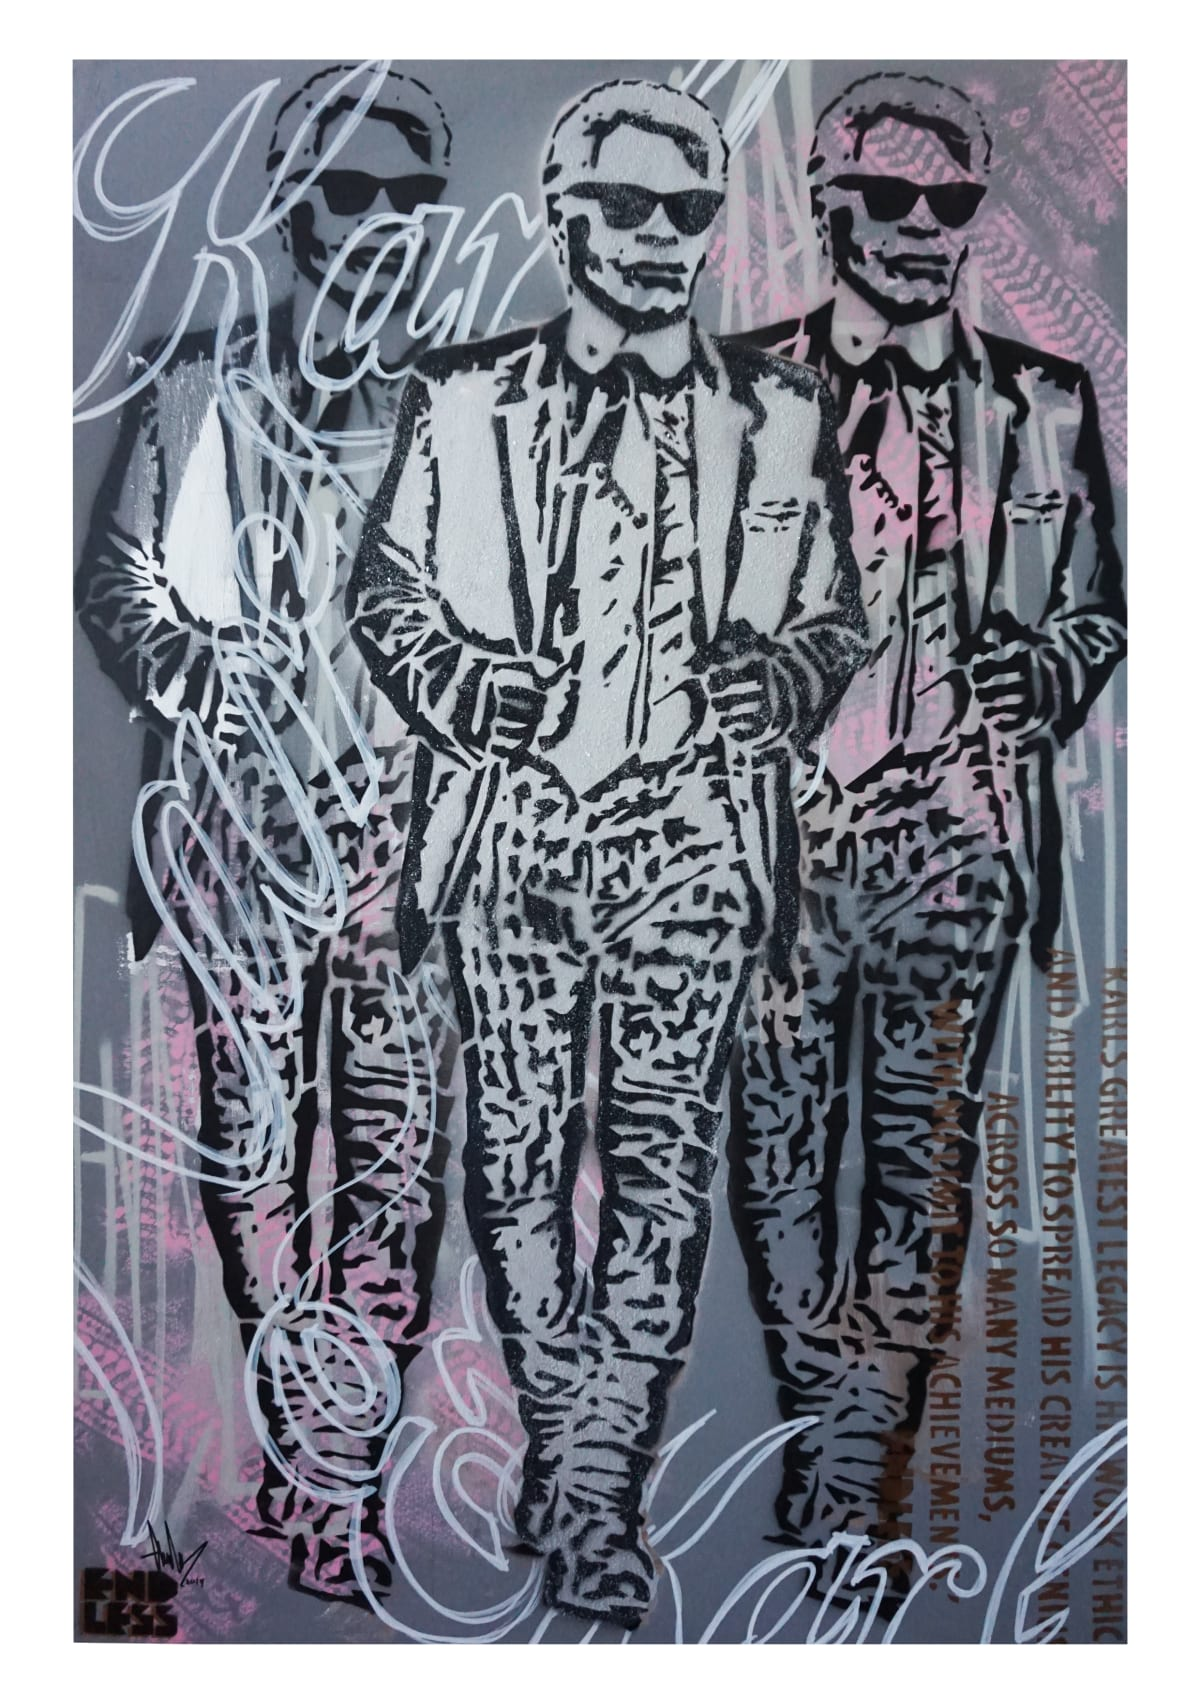 endless Karl Suited and Booted, 2019 Mixed Media on Canvas 150 x 100 cm 59.06 x 39.37 in